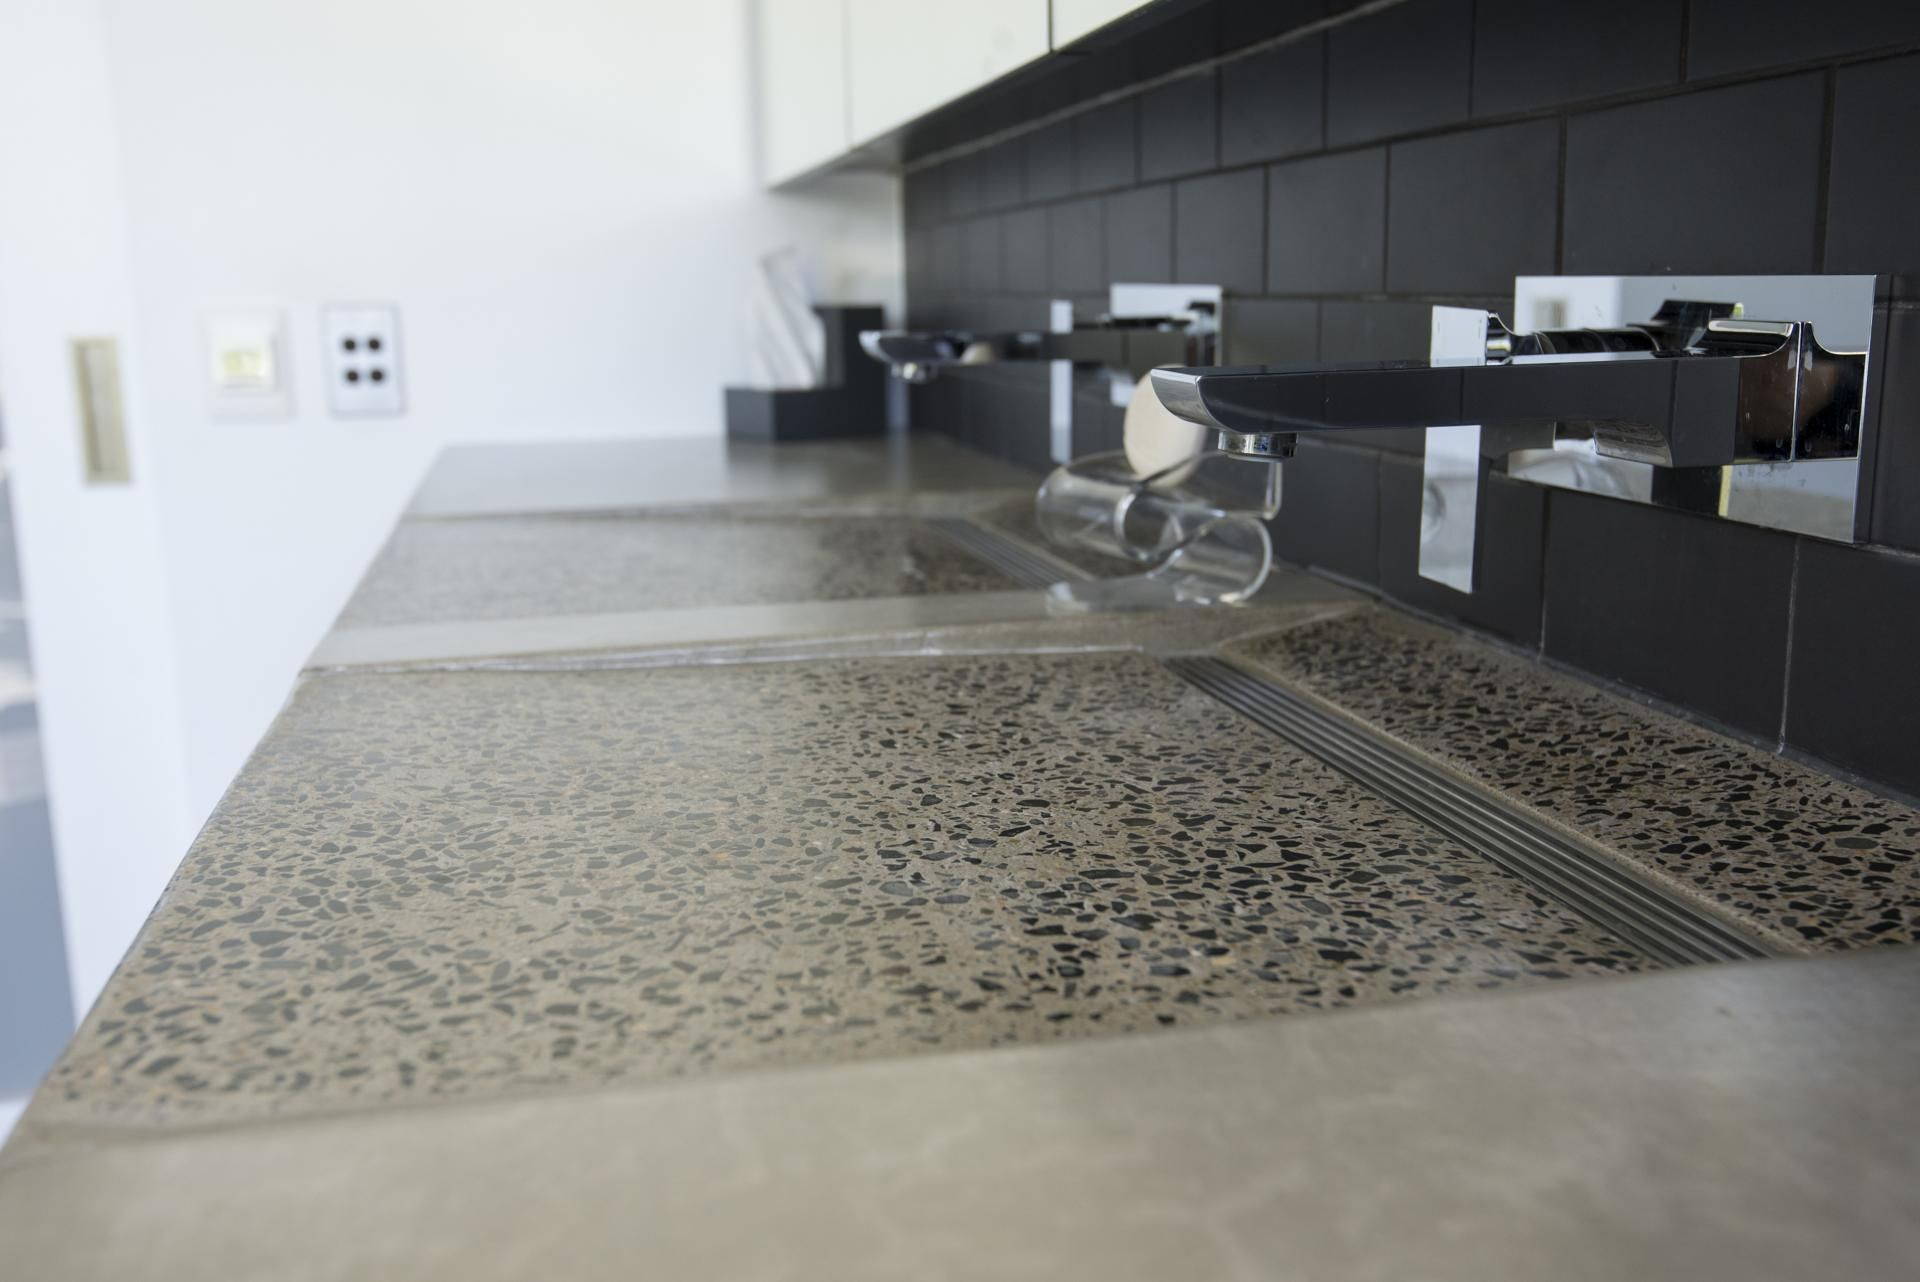 Concreate polished concrete bathroom benchtop by concreate